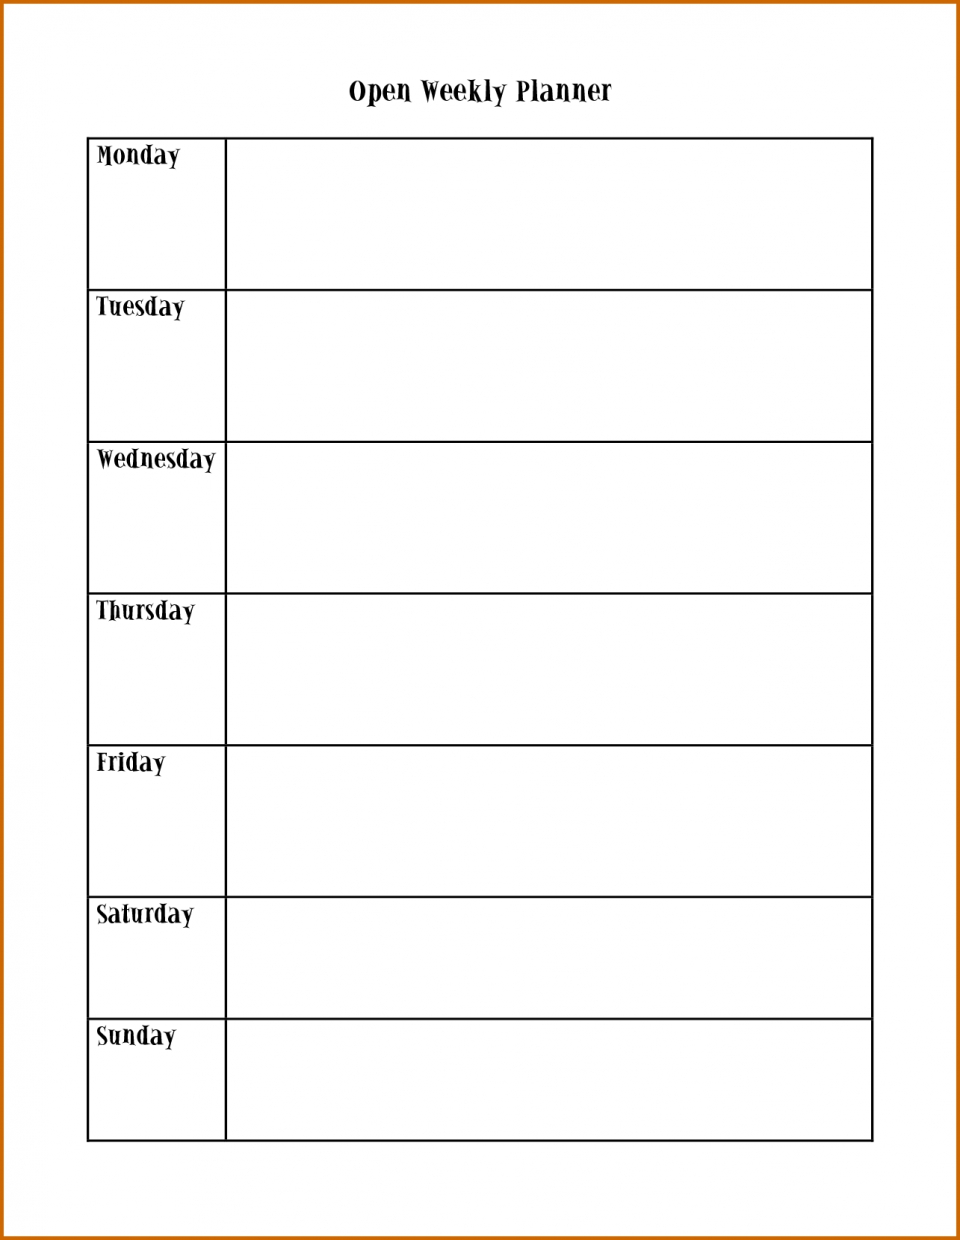 Schedule Template Monday To Sunday Weekly Friday With Times Thru regarding Monday - Sunday Weekly Schedule